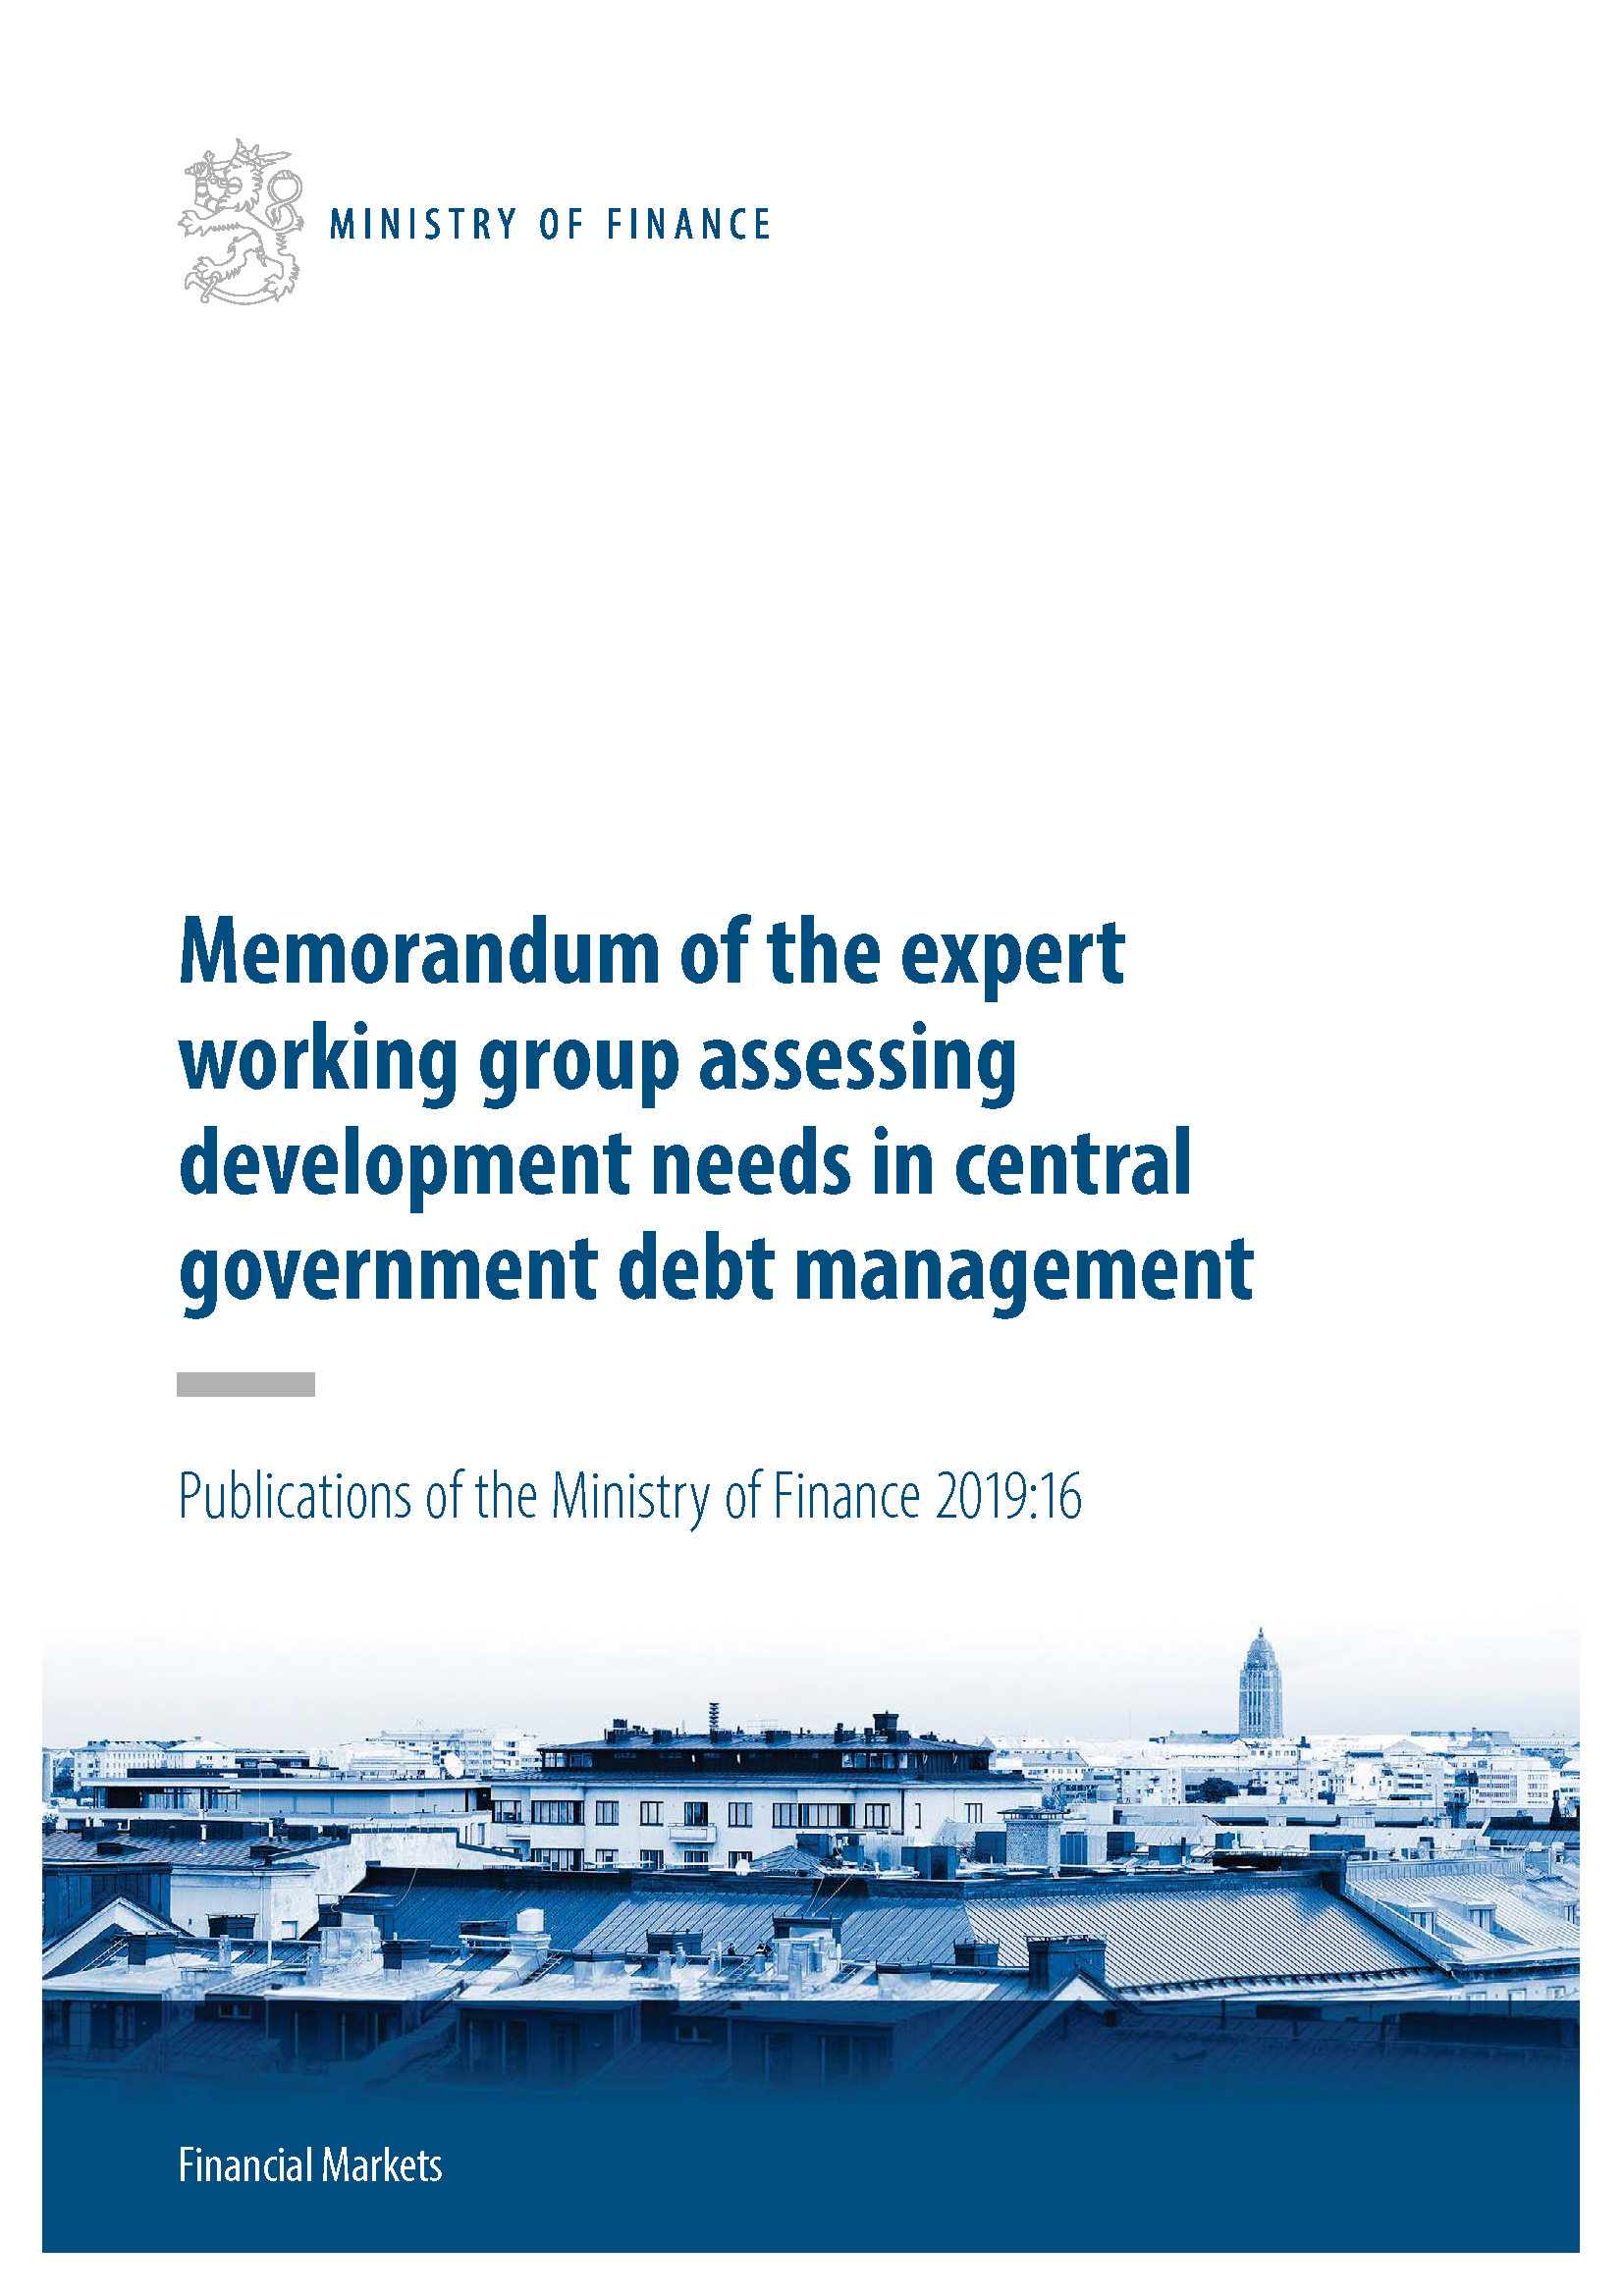 Memorandum of the expert working group assessing development needs in central government debt management